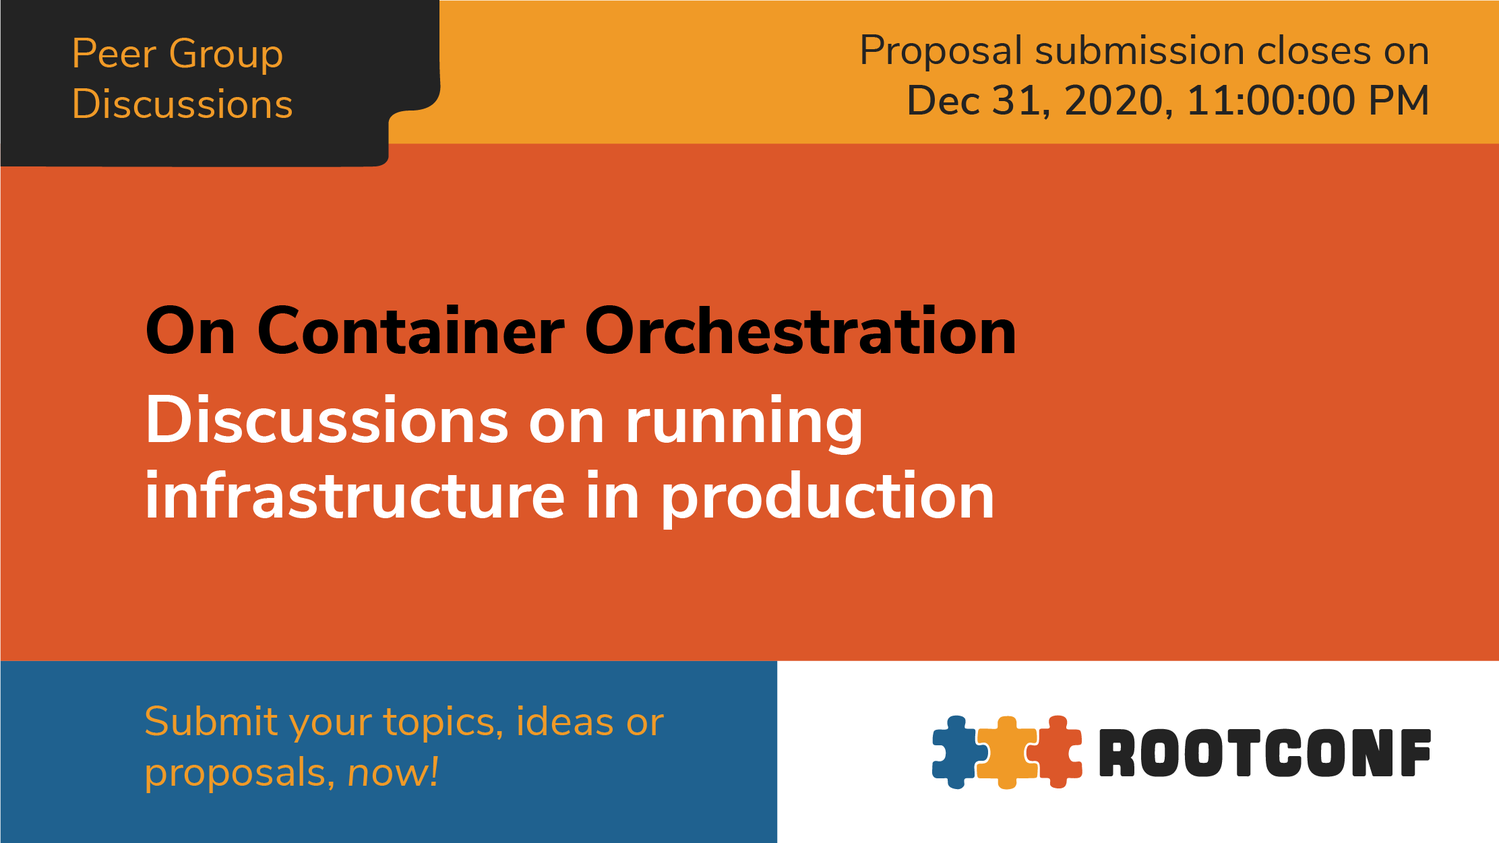 On Container Orchestration